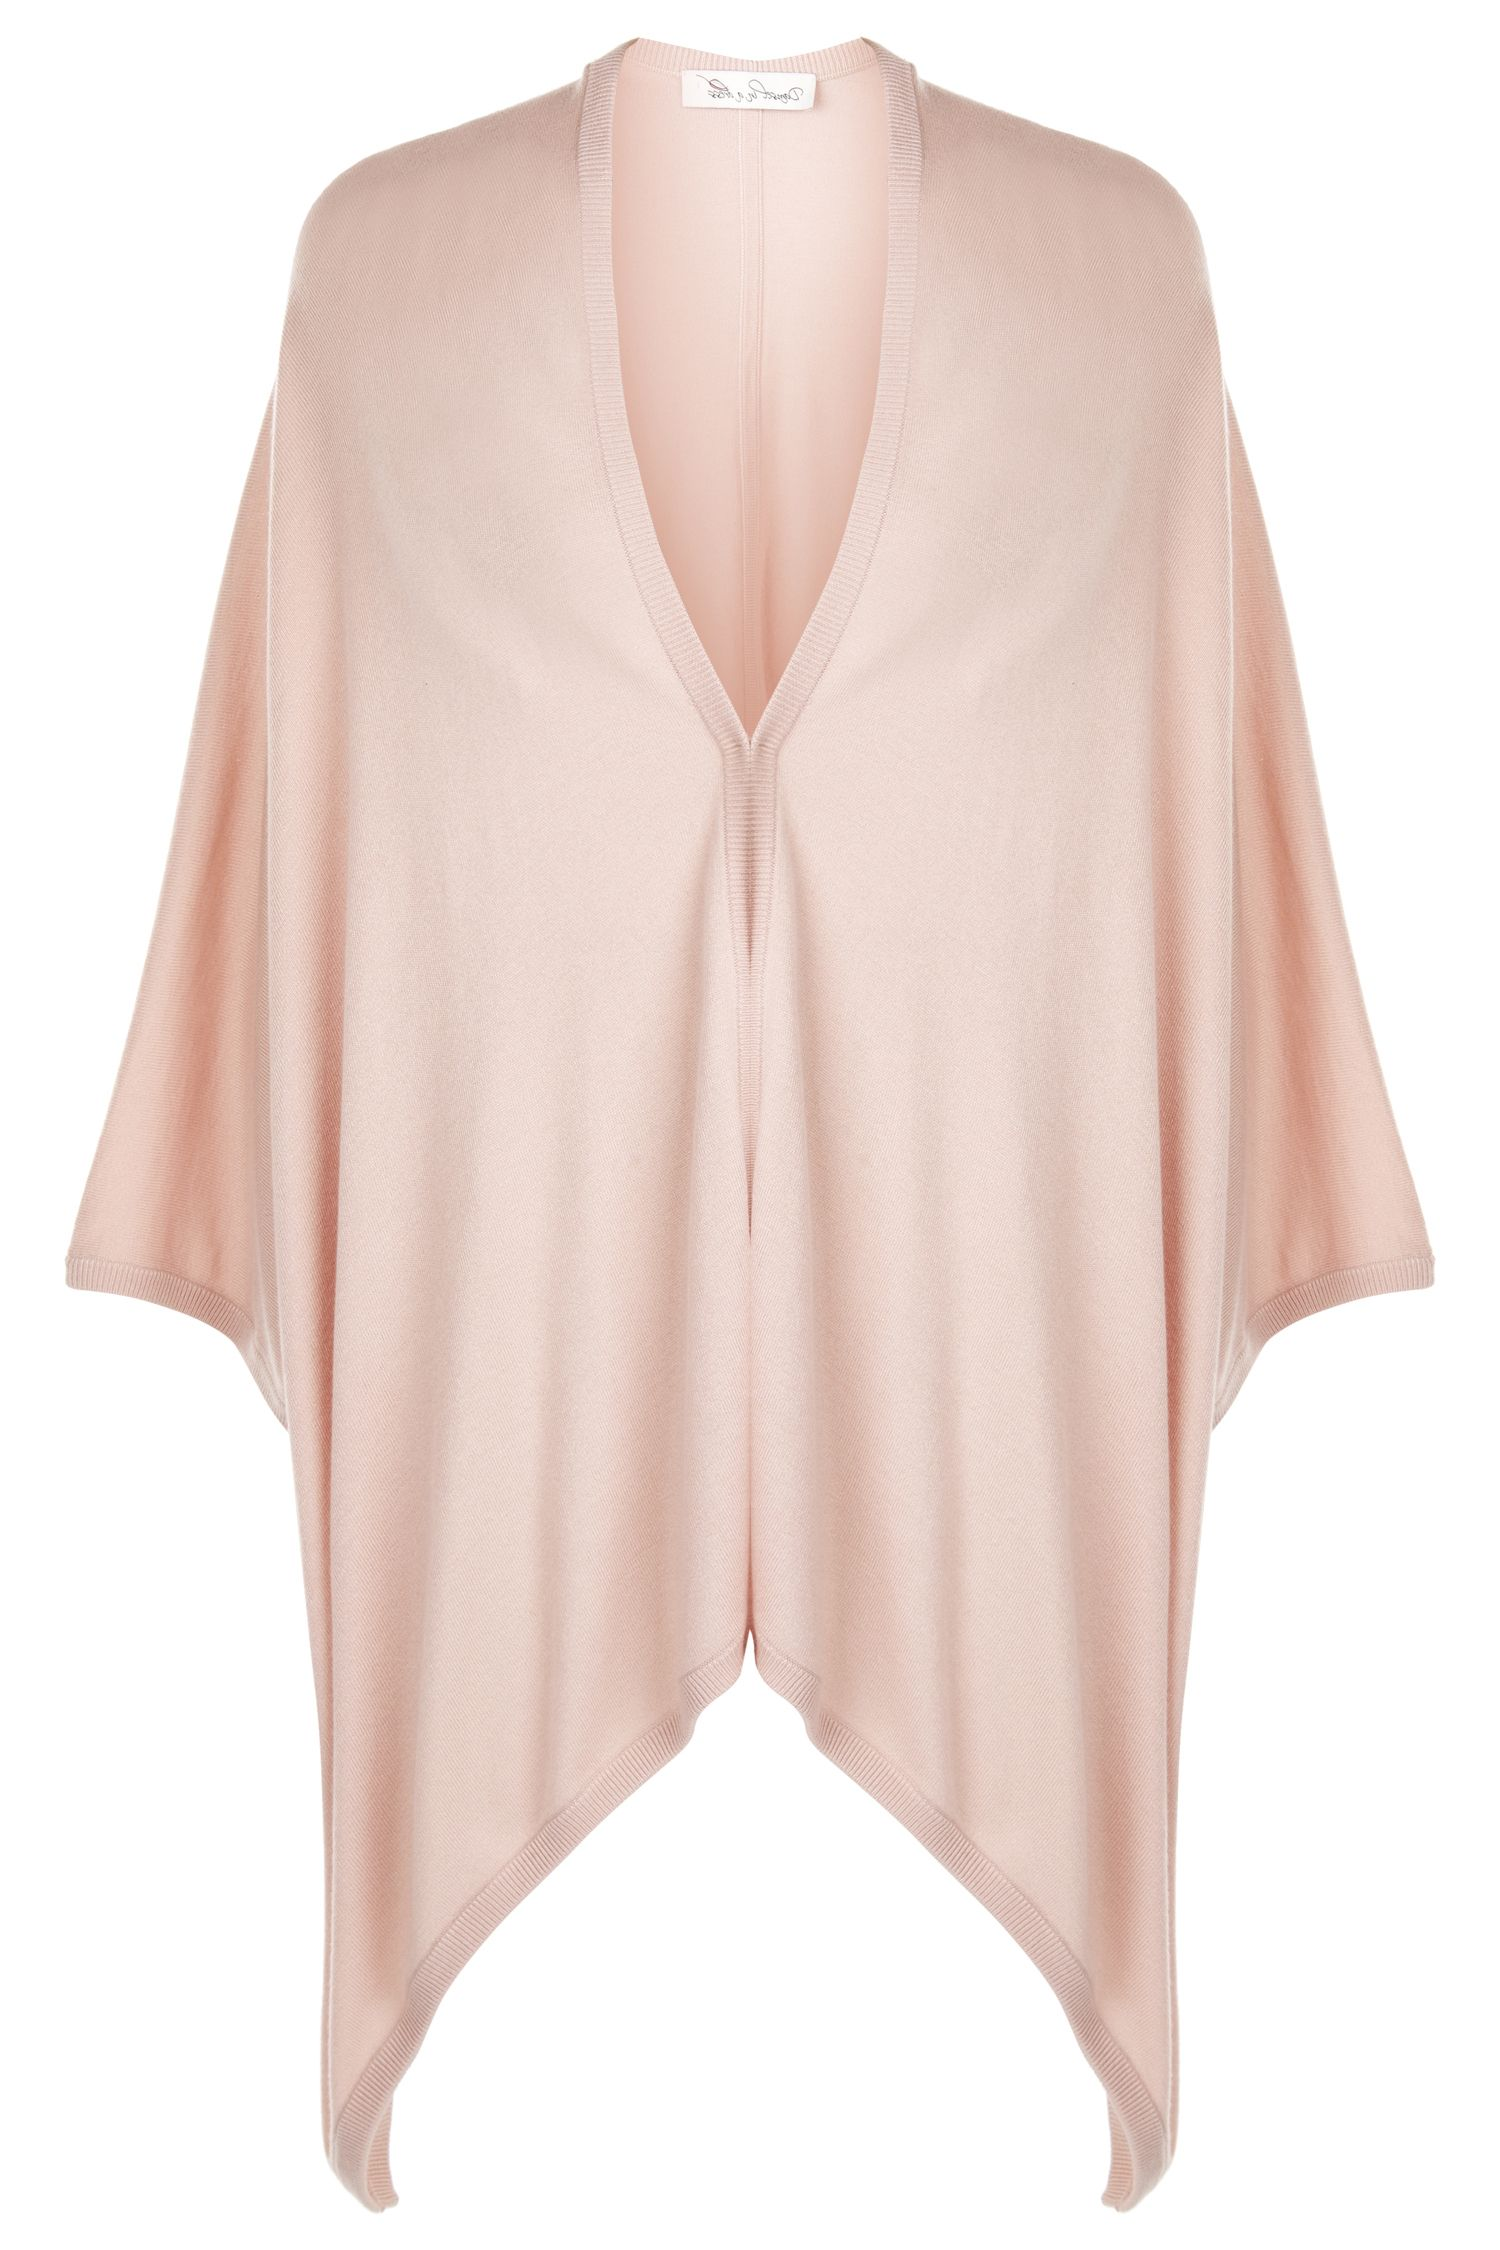 Damsel in a Dress Scoop Cover Up, Pink